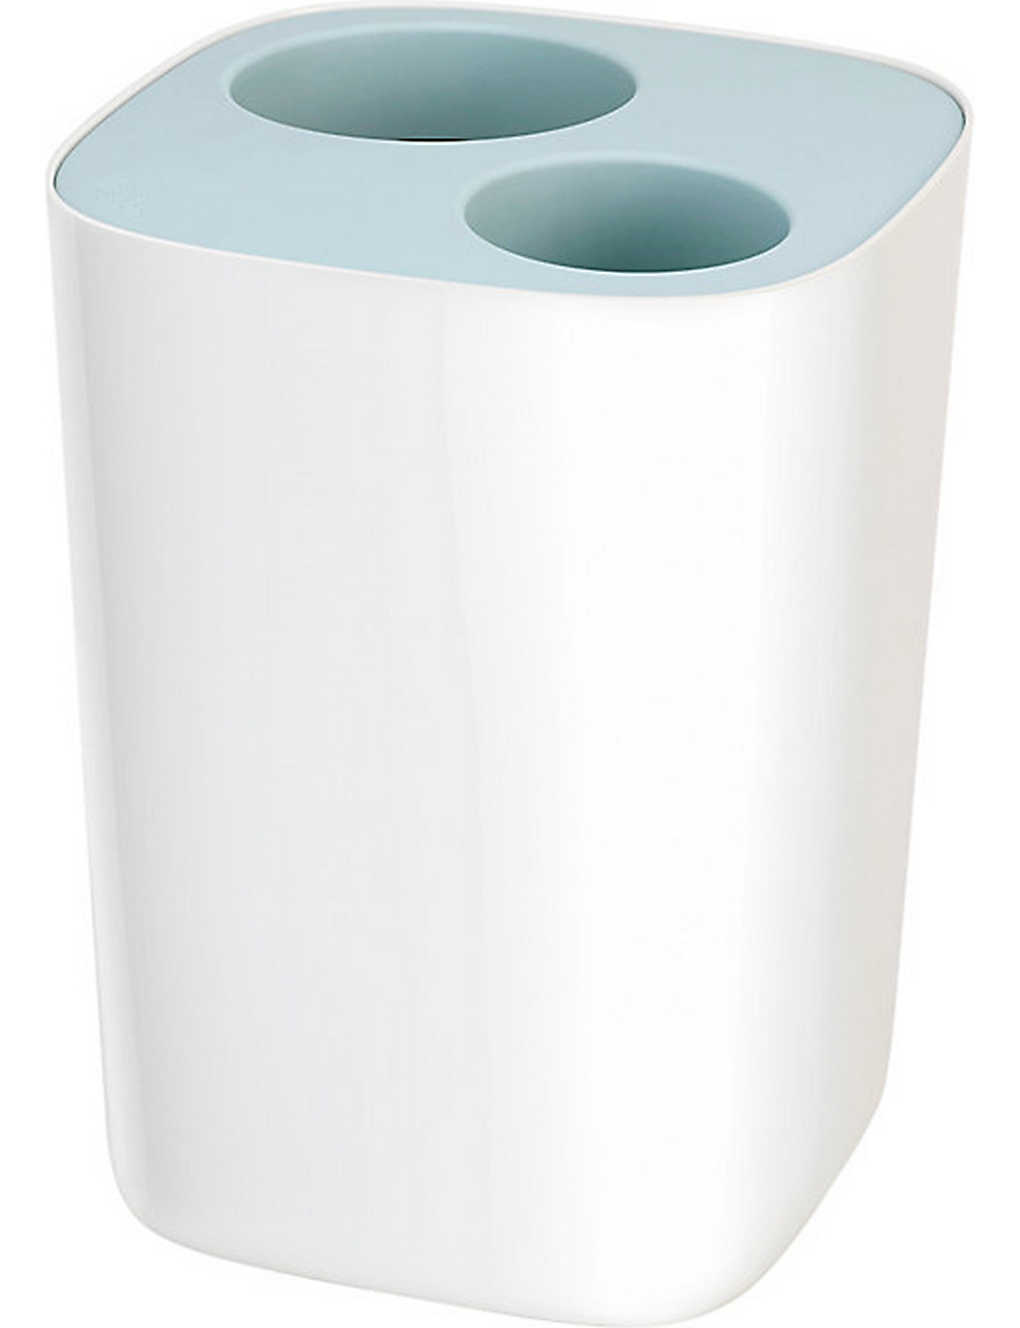 JOSEPH JOSEPH - Split bathroom waste separation bin 8l | Selfridges.com